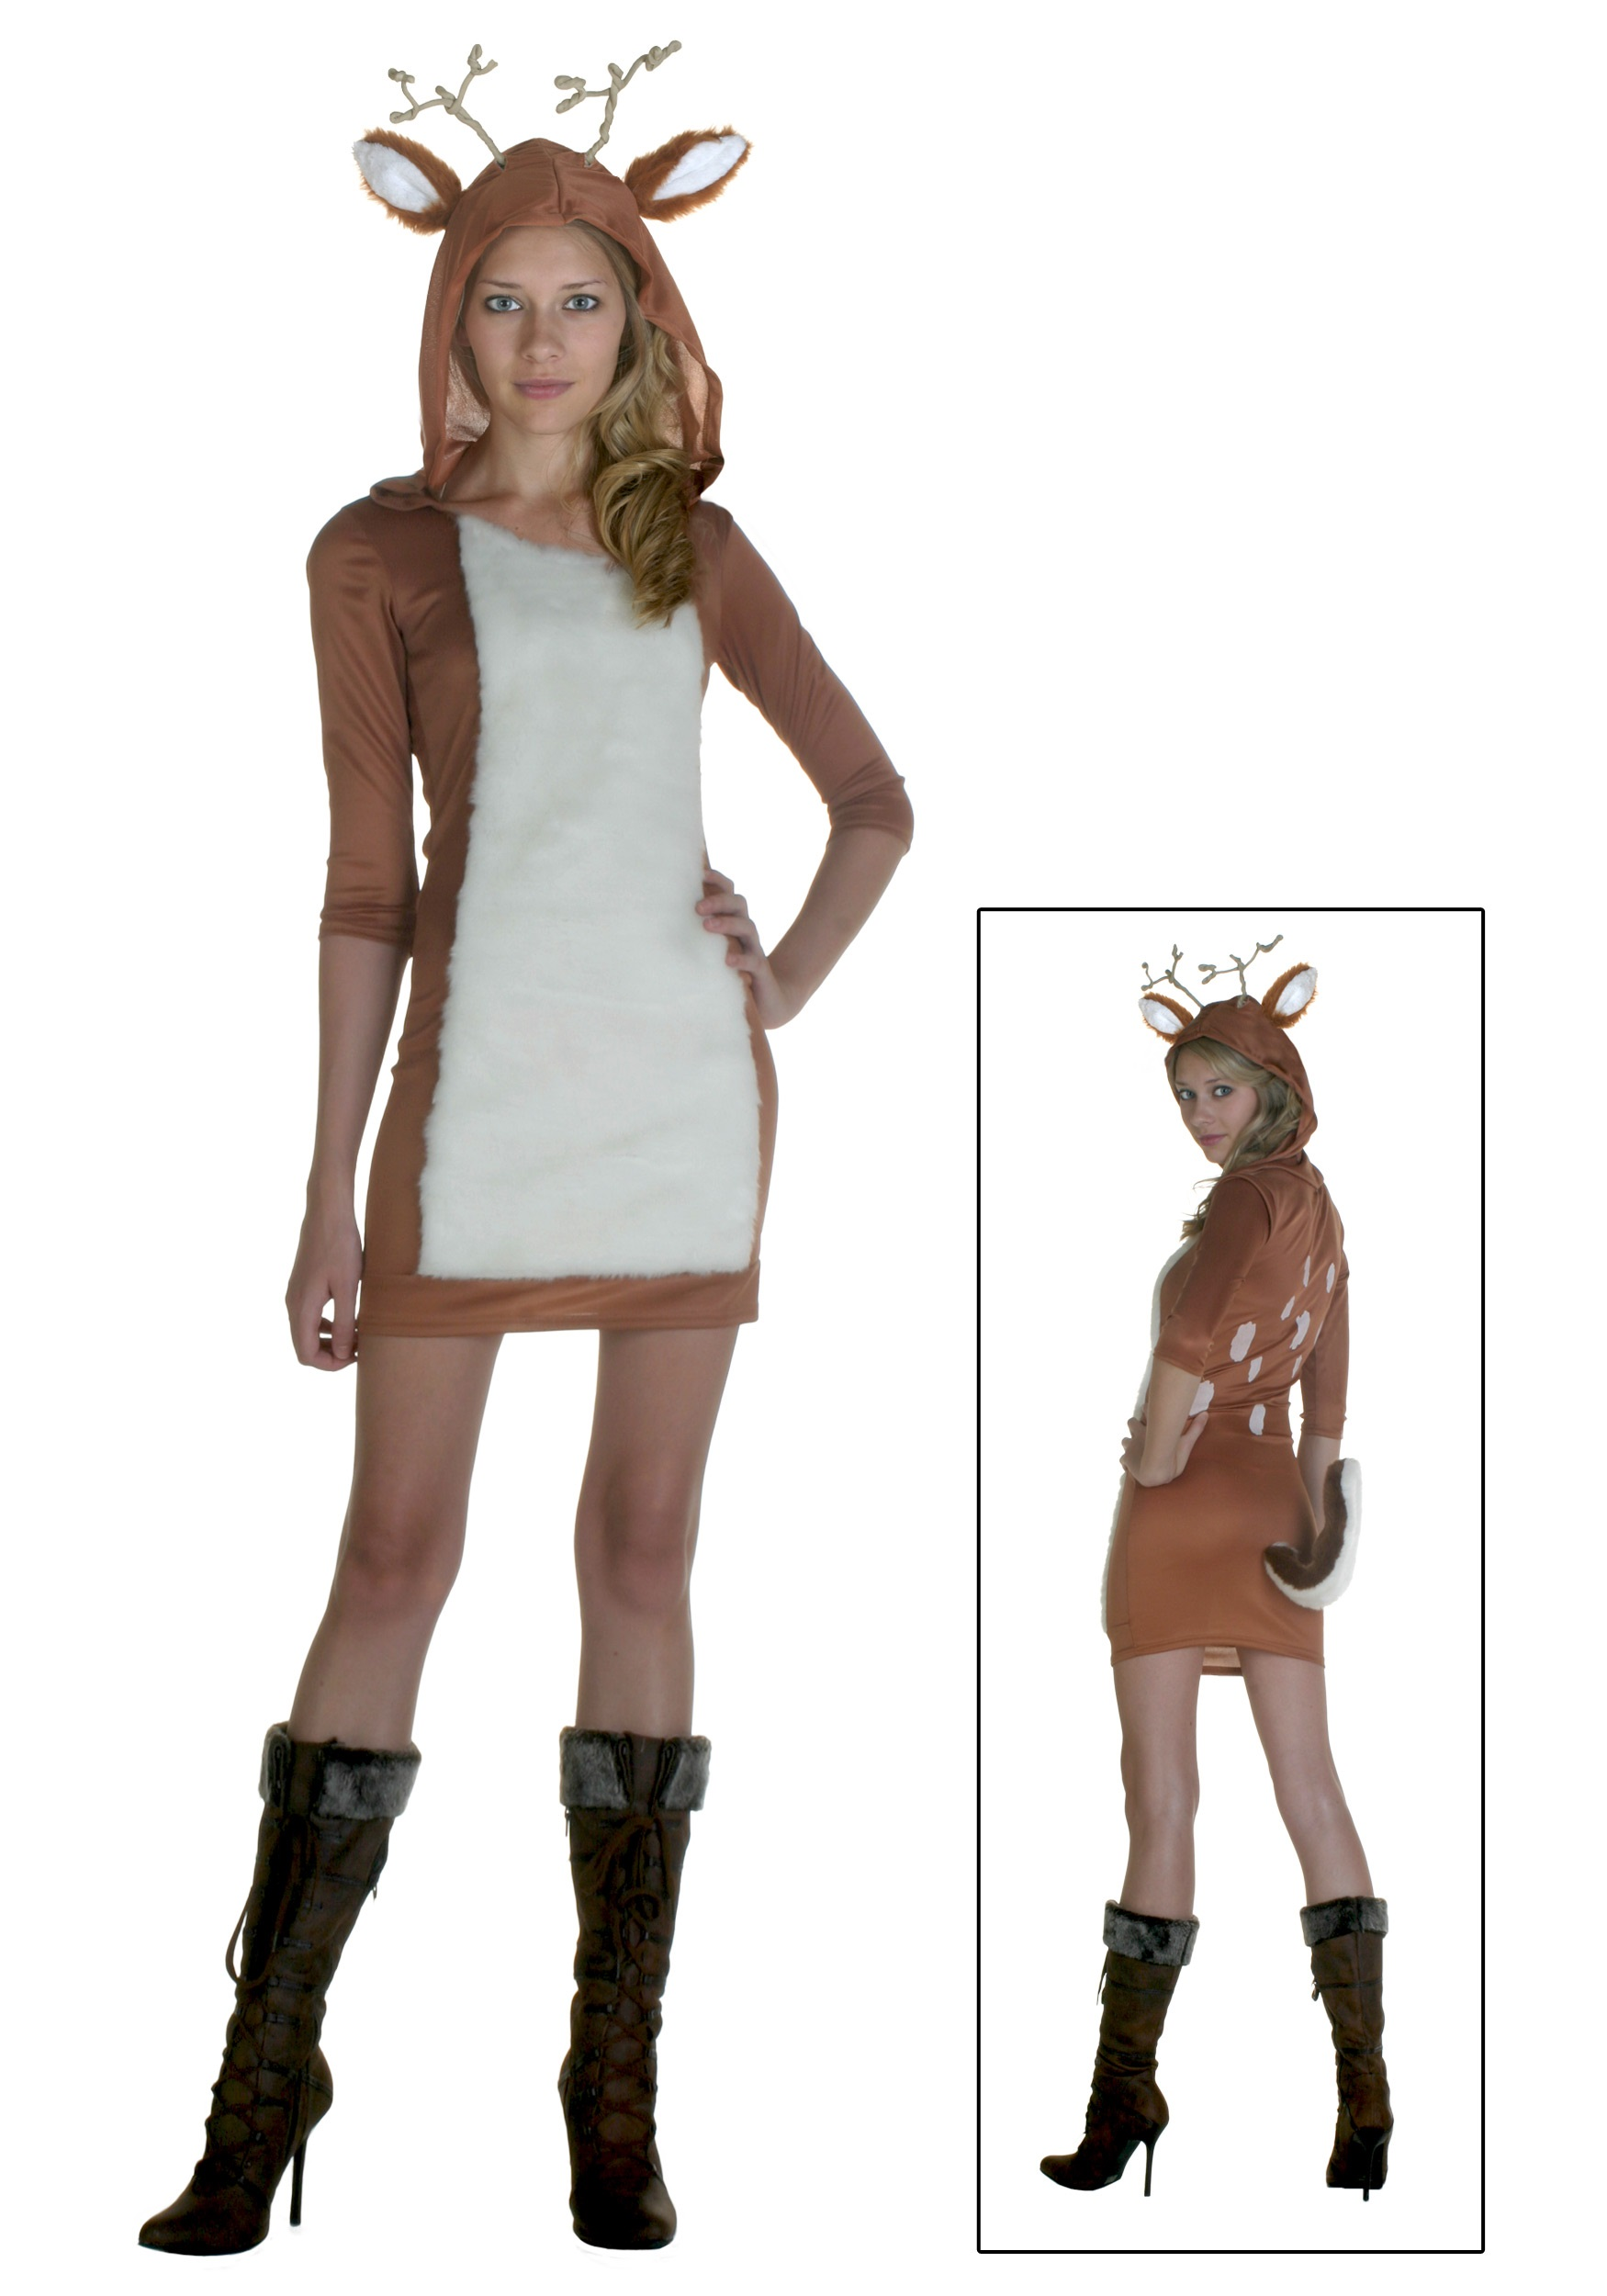 Sexy Deer Costume - Halloween Costume Ideas 2018 821135ded